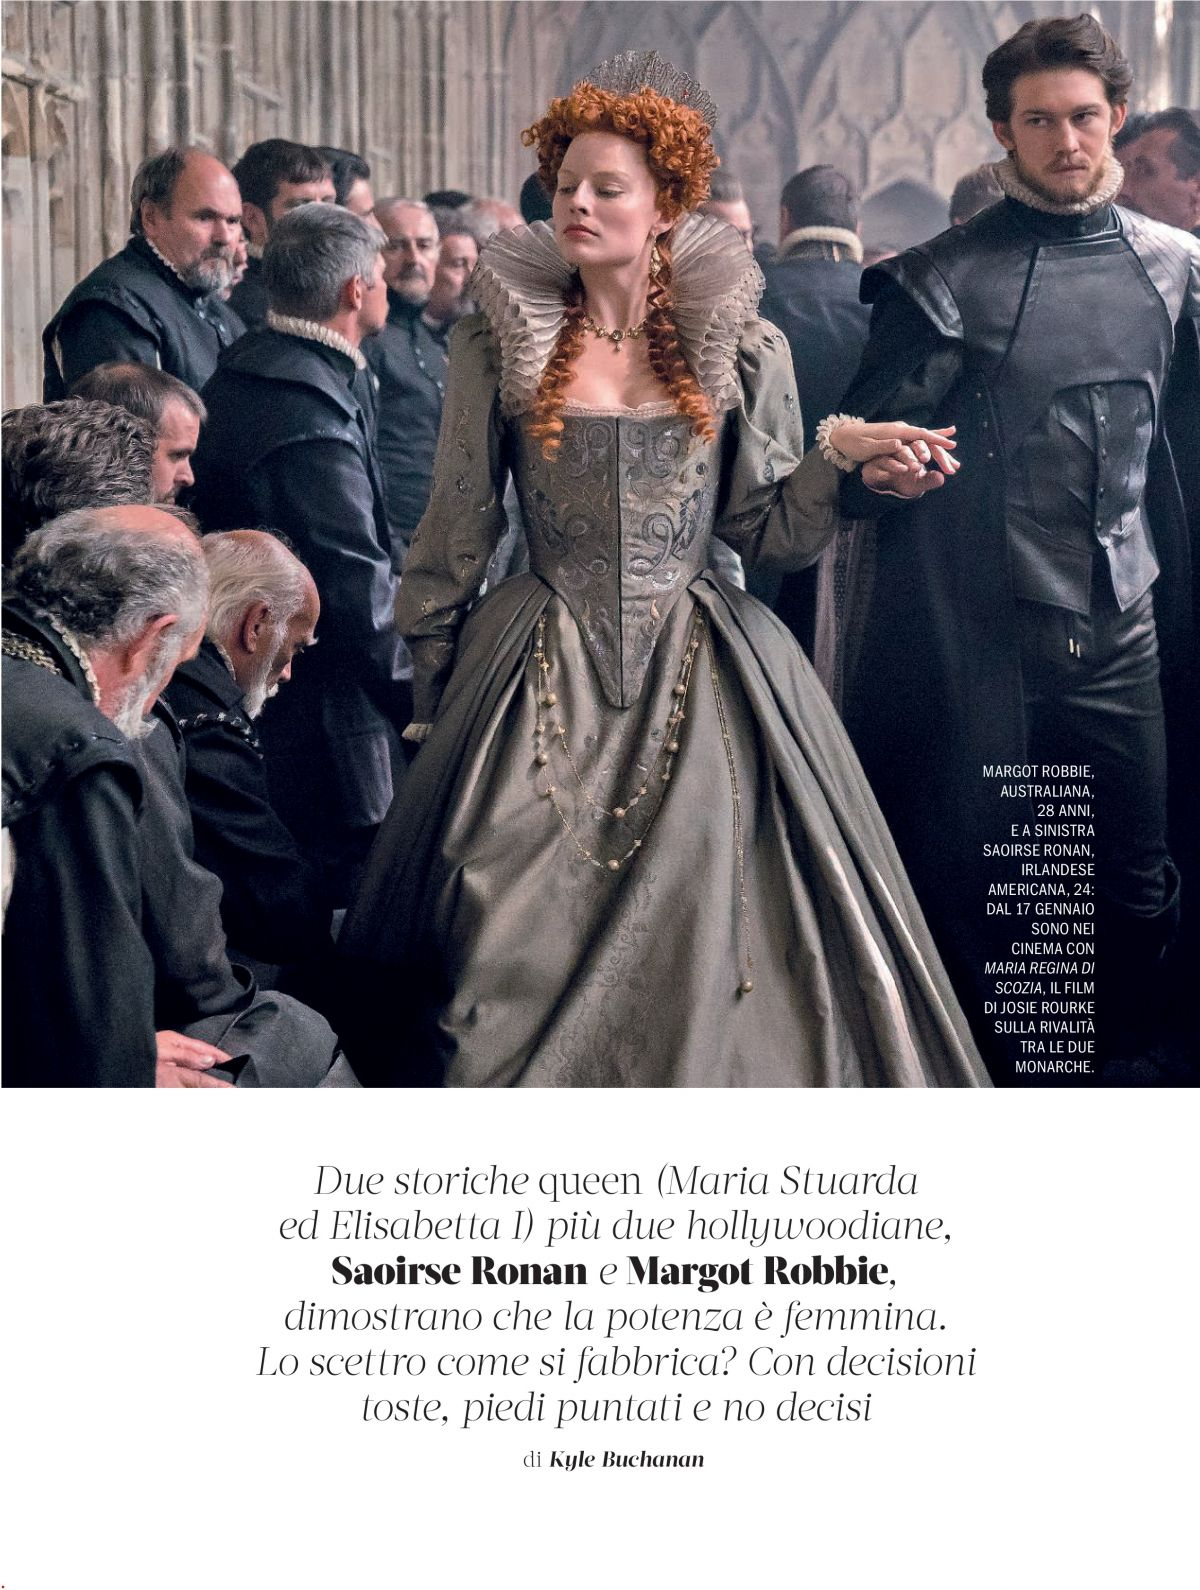 margot-robbie-and-saoirse-ronan-in-marie-claire-magazine-italy-february-2019-4.jpg